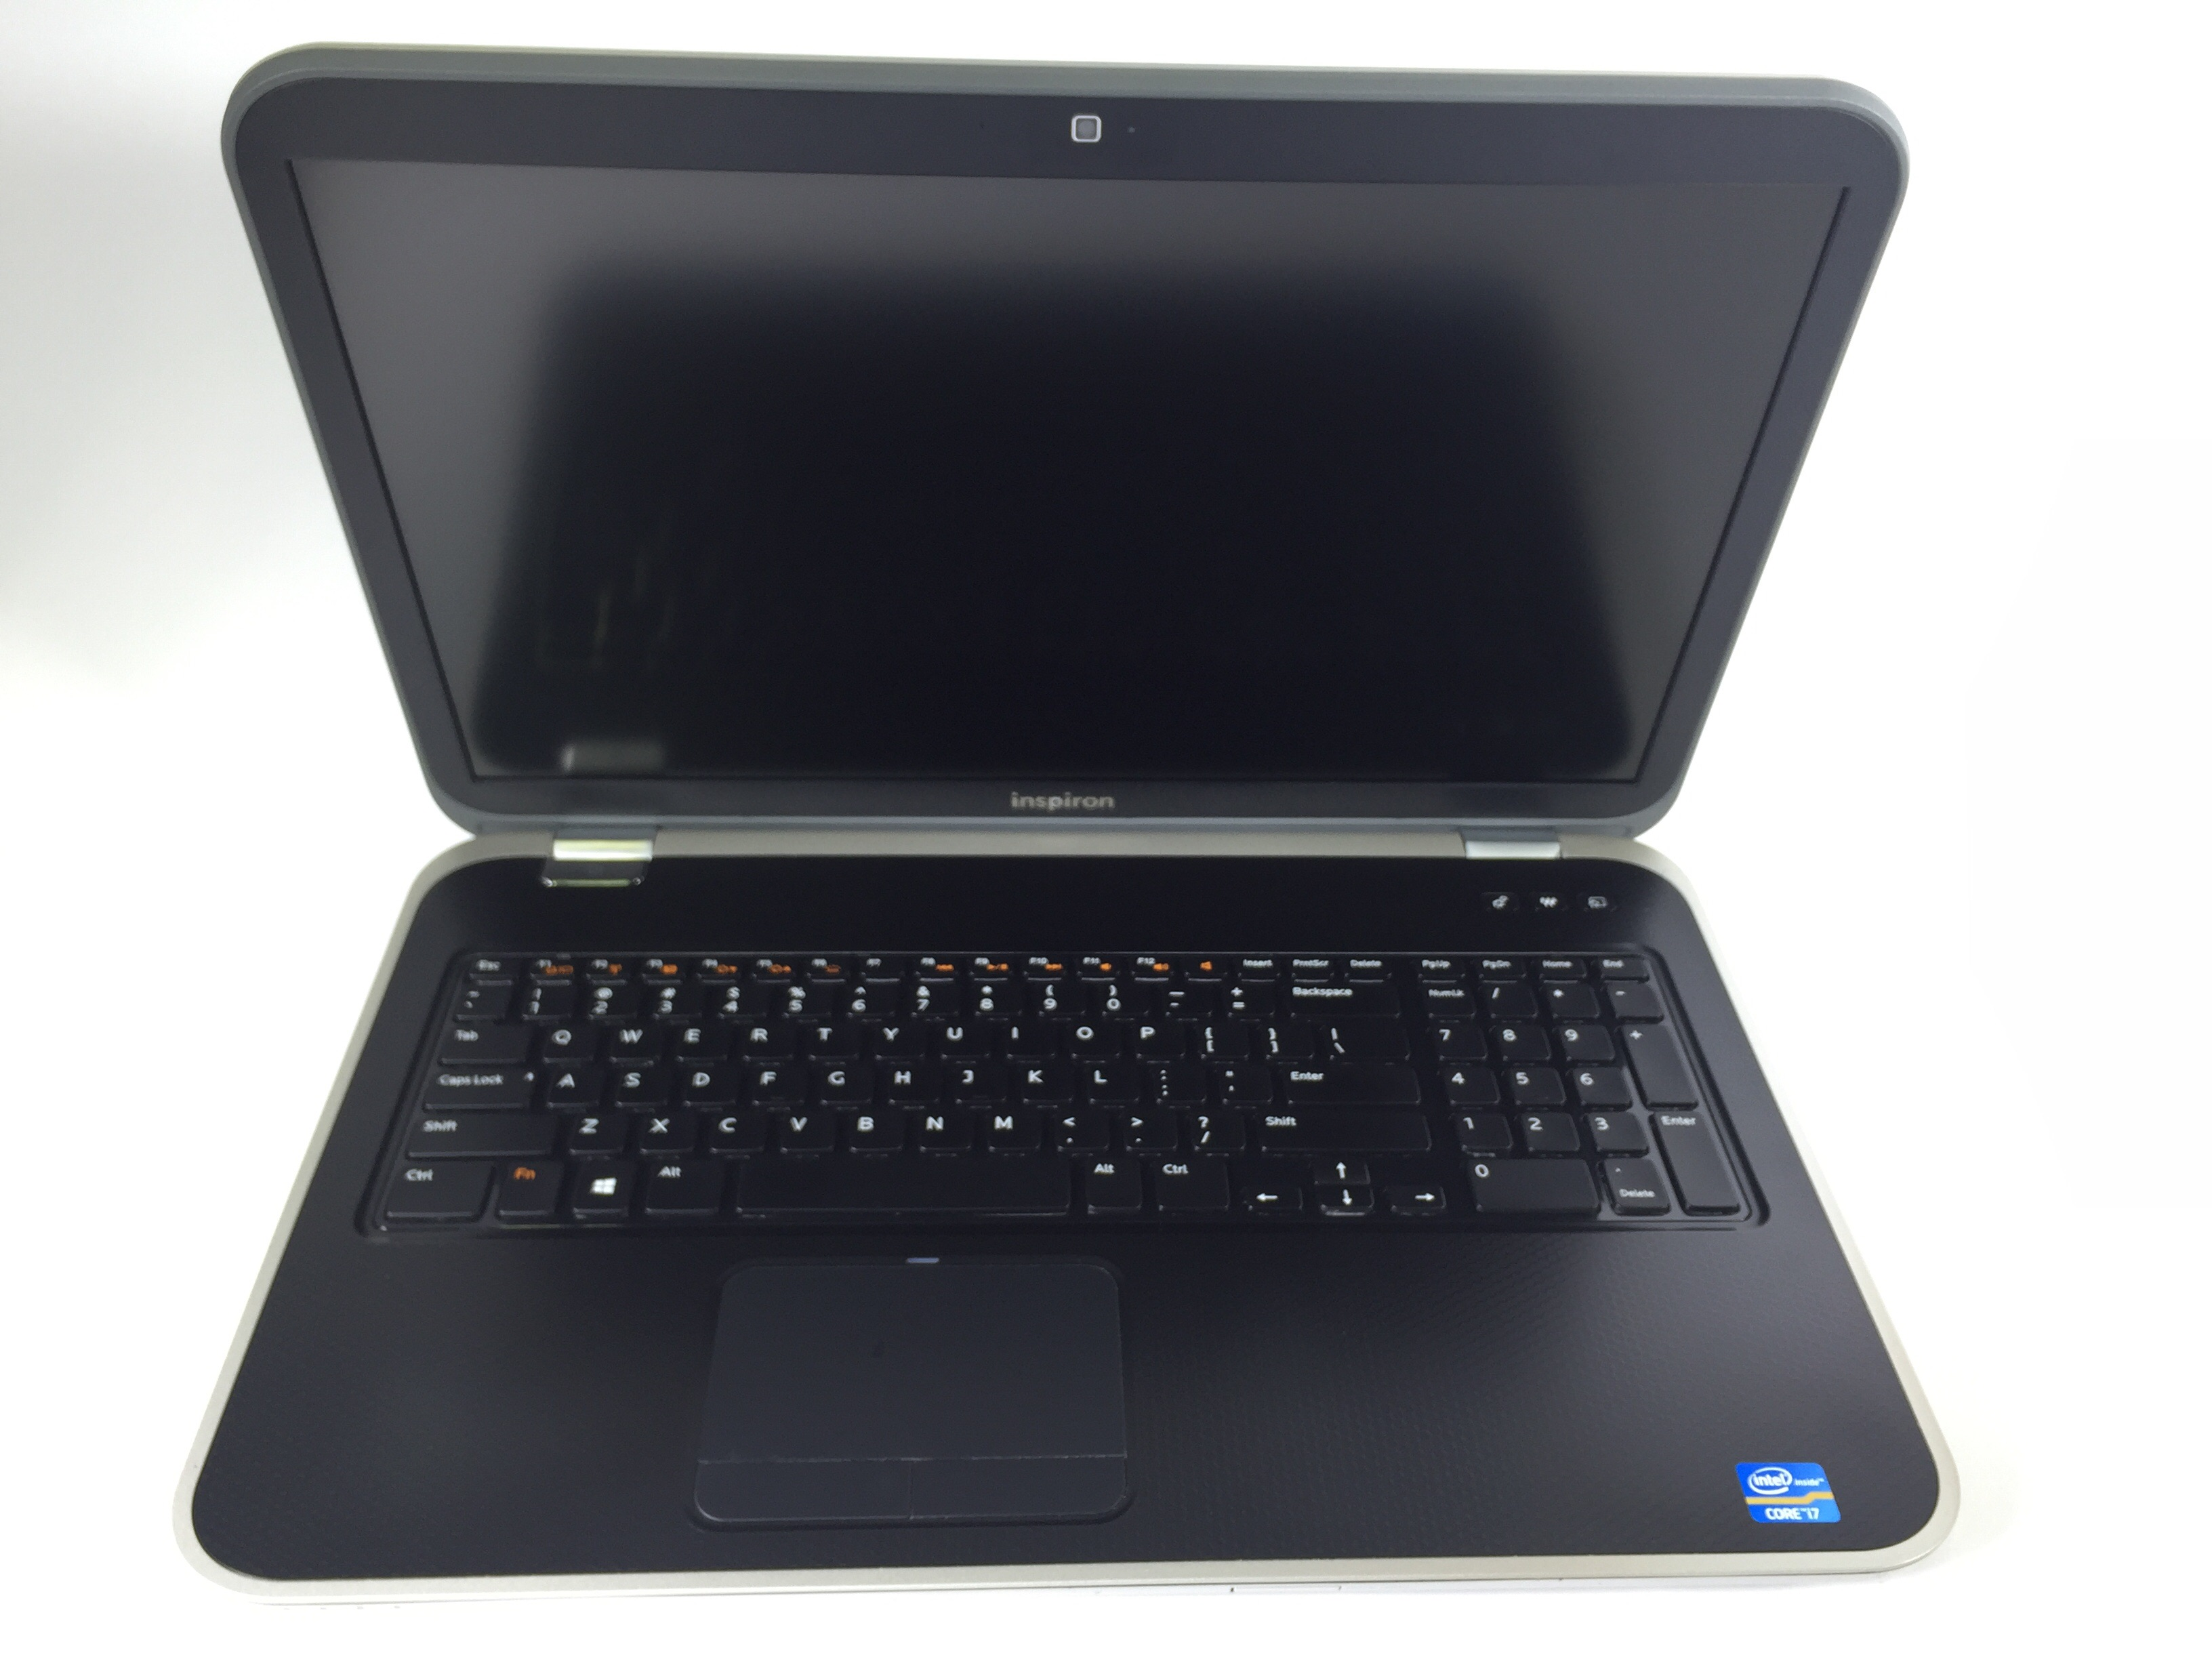 dell inspiron 17r 7720 i7 2 4ghz 8gb 1tb 32gb ssd fair condition no os ebay. Black Bedroom Furniture Sets. Home Design Ideas